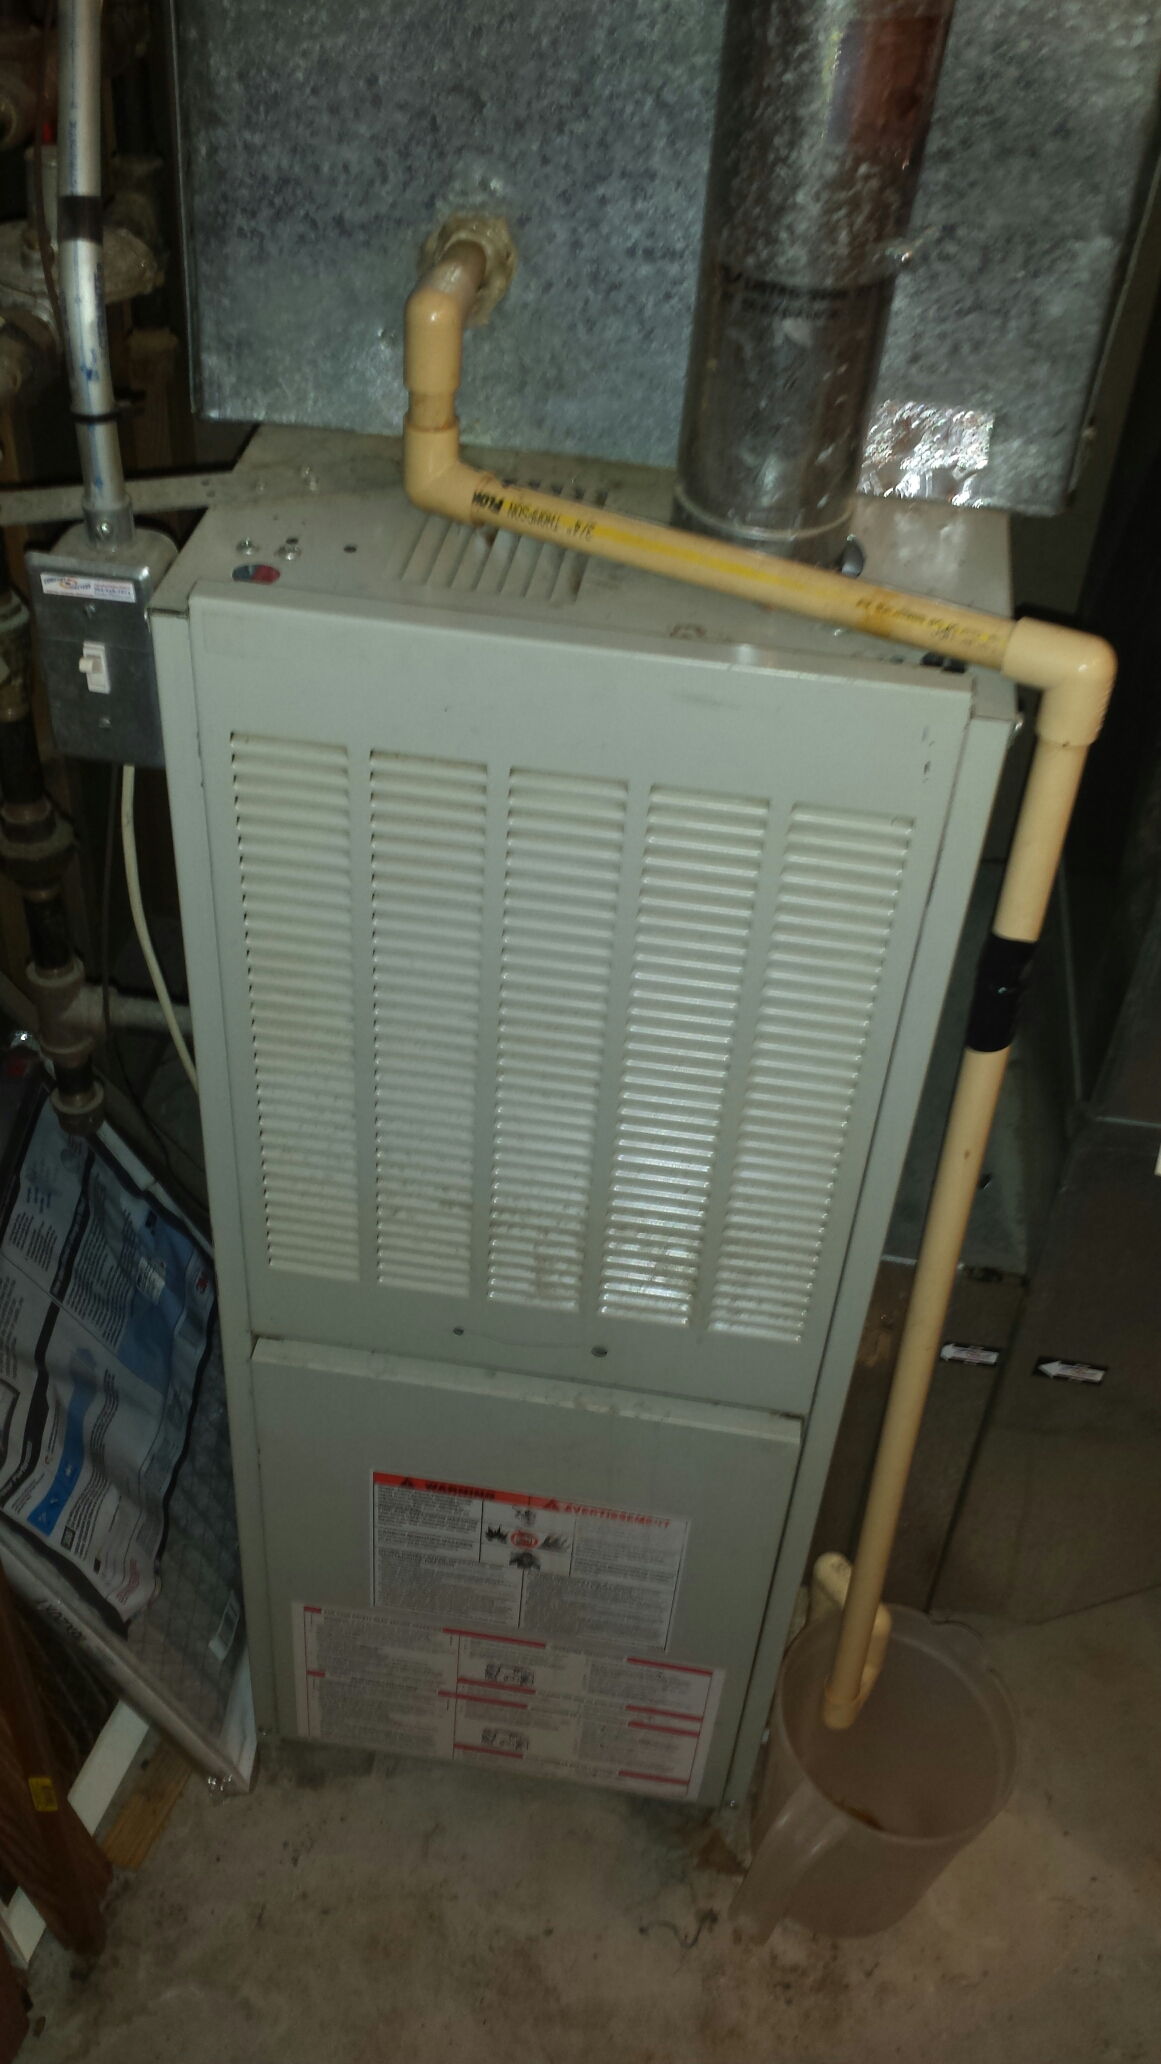 Monticello, MN - Heating maintenance. Diagnosed a cracked heat exchanger on an ICP furnace.